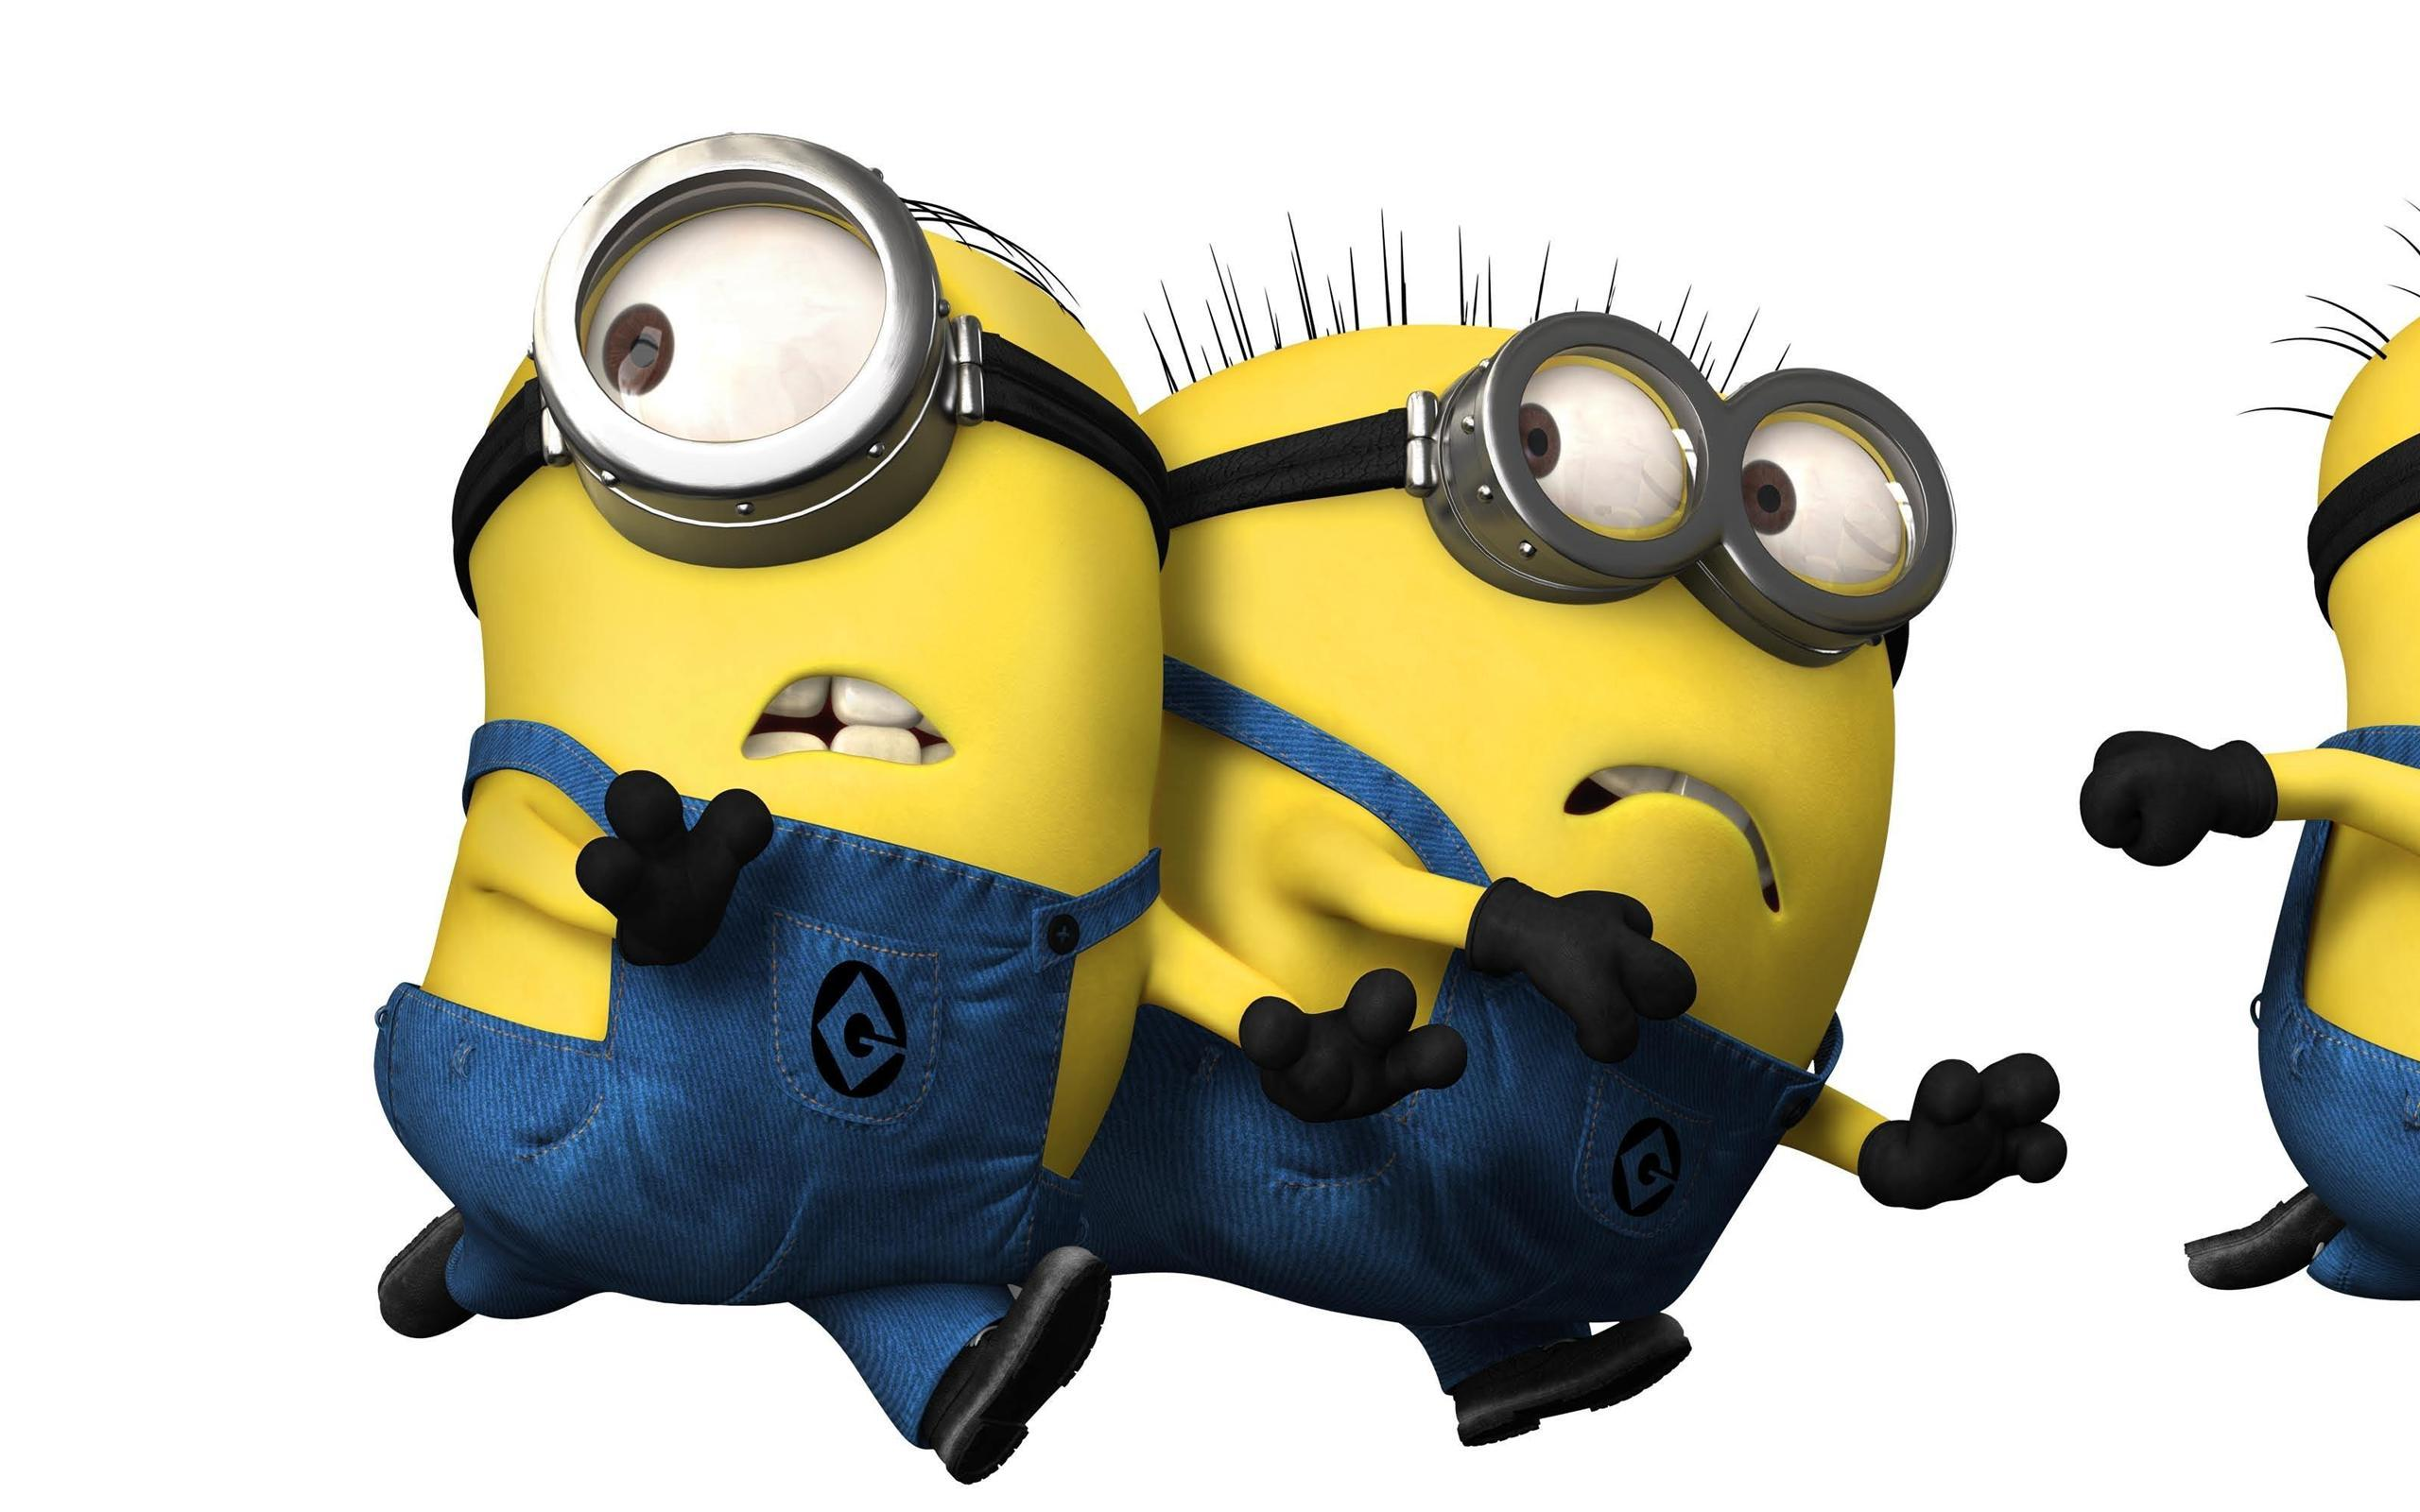 despicable me minions wallpapers - photo #3